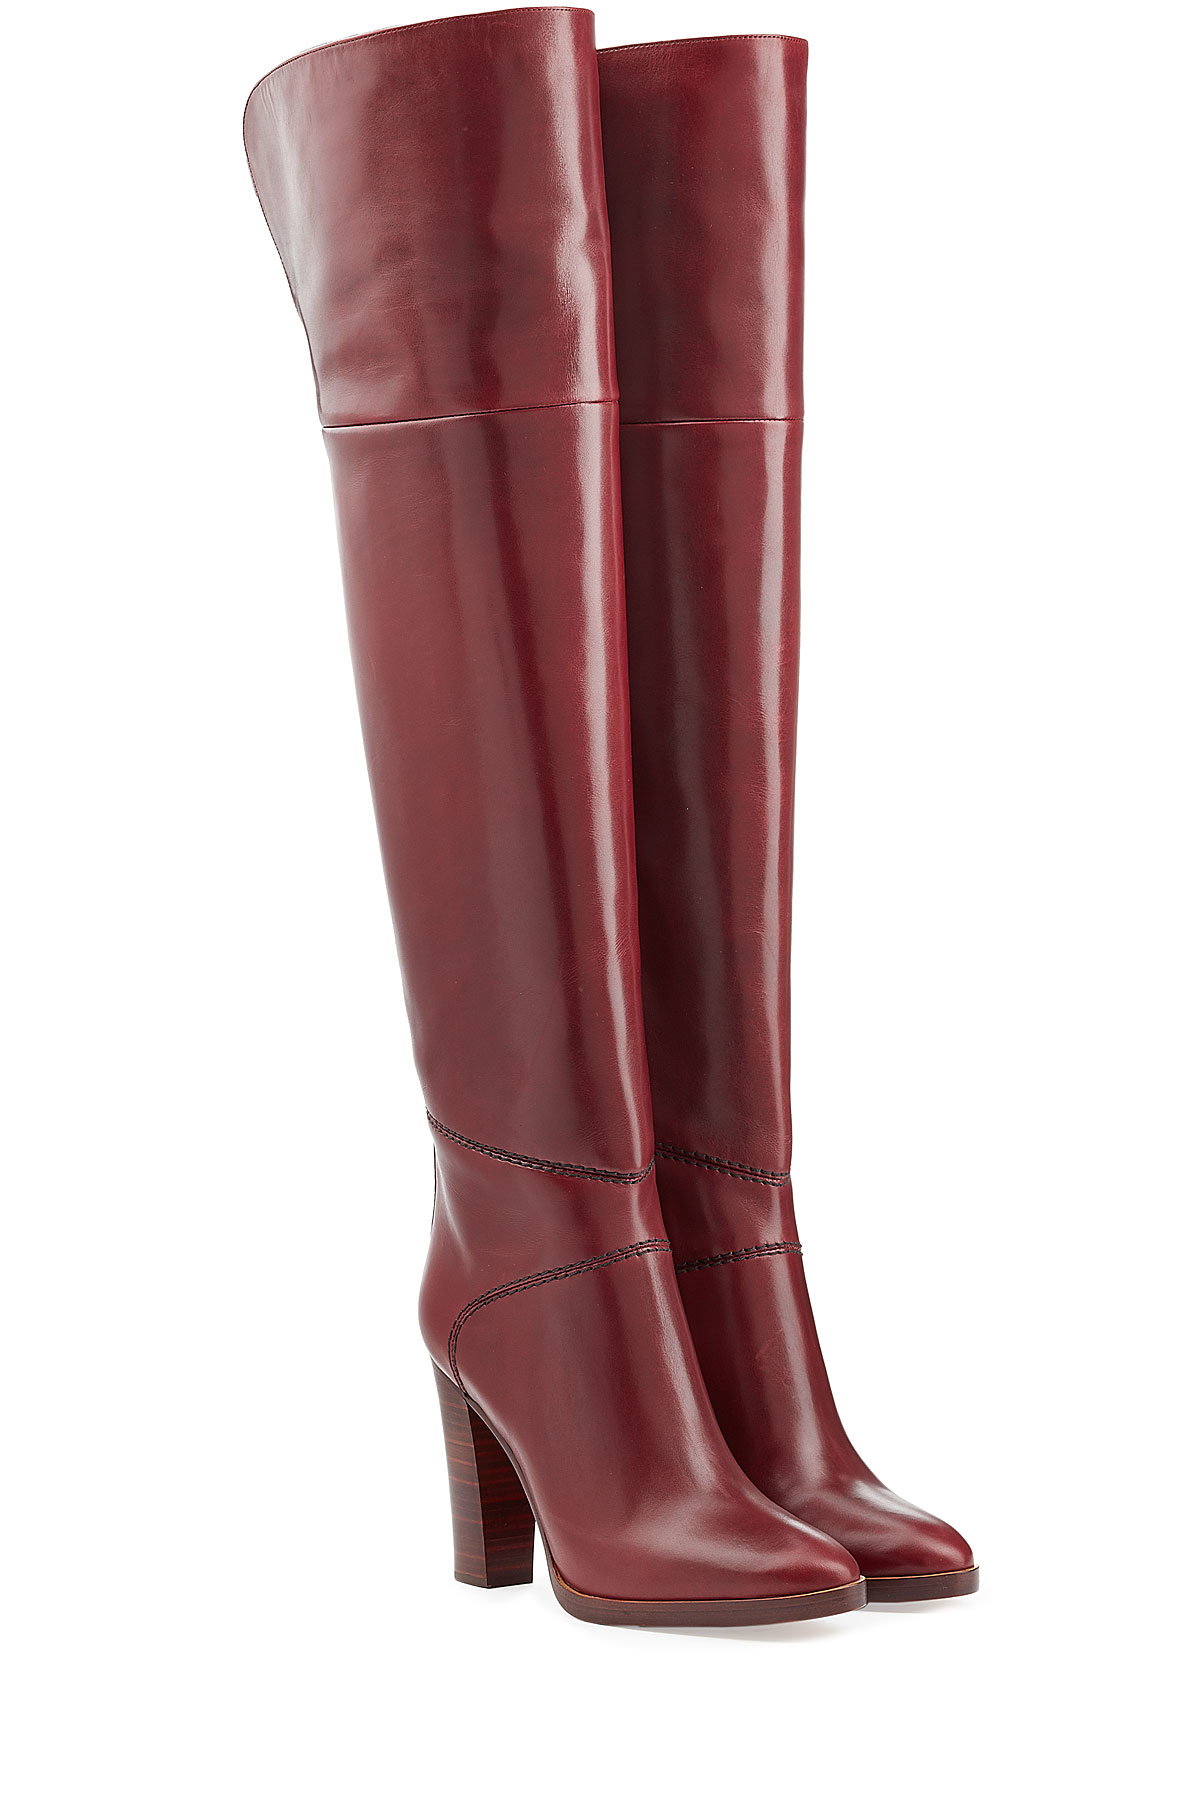 f39d8896cae Chloé Chloé Over-the-knee Leather Boots - Red in Purple - Lyst